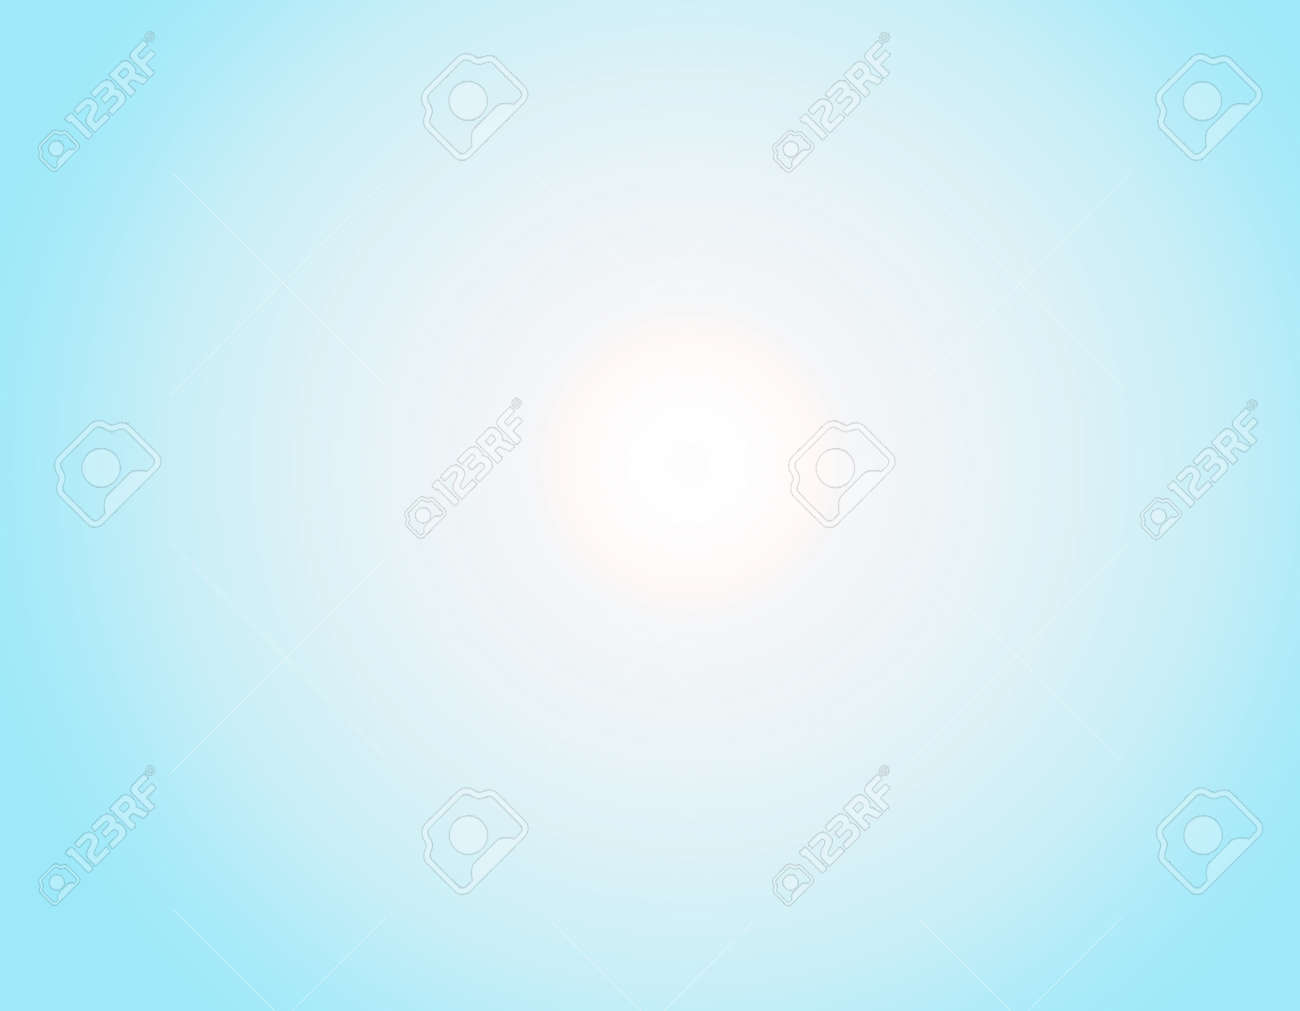 Light Blue And White Gradient On The White Background Stock Photo Picture And Royalty Free Image Image 56107738